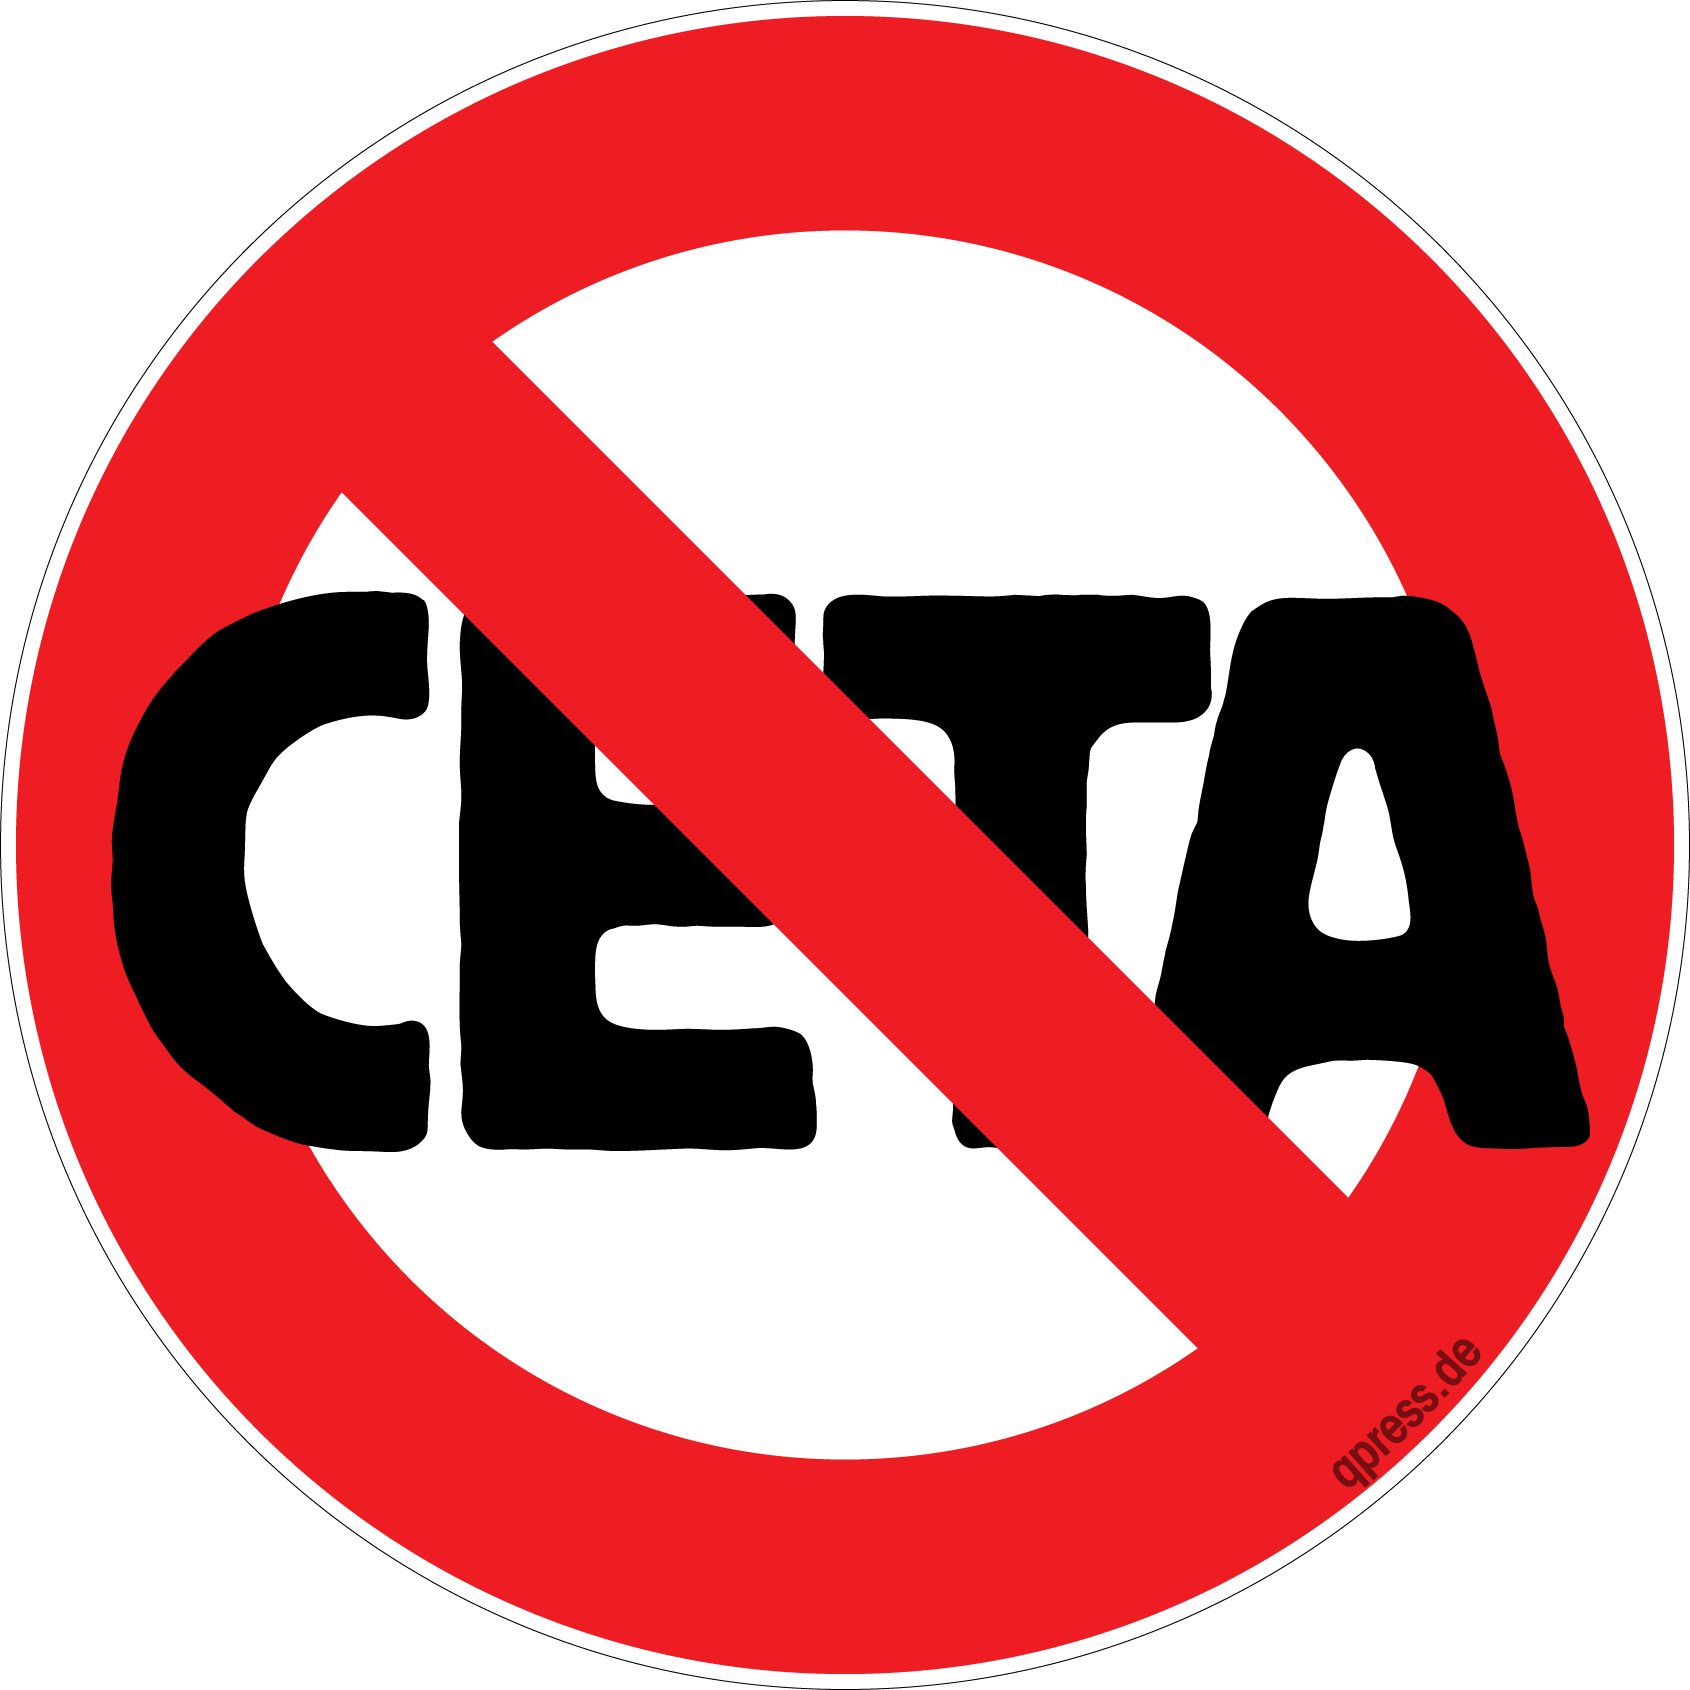 ceta_comprehensive_economic_and_trade_agreement_kritisches_netzwerk_freihandelsabkommen_handeslsabkommen_ttip_canada_kanada_european_union_entdemokratisierung.png